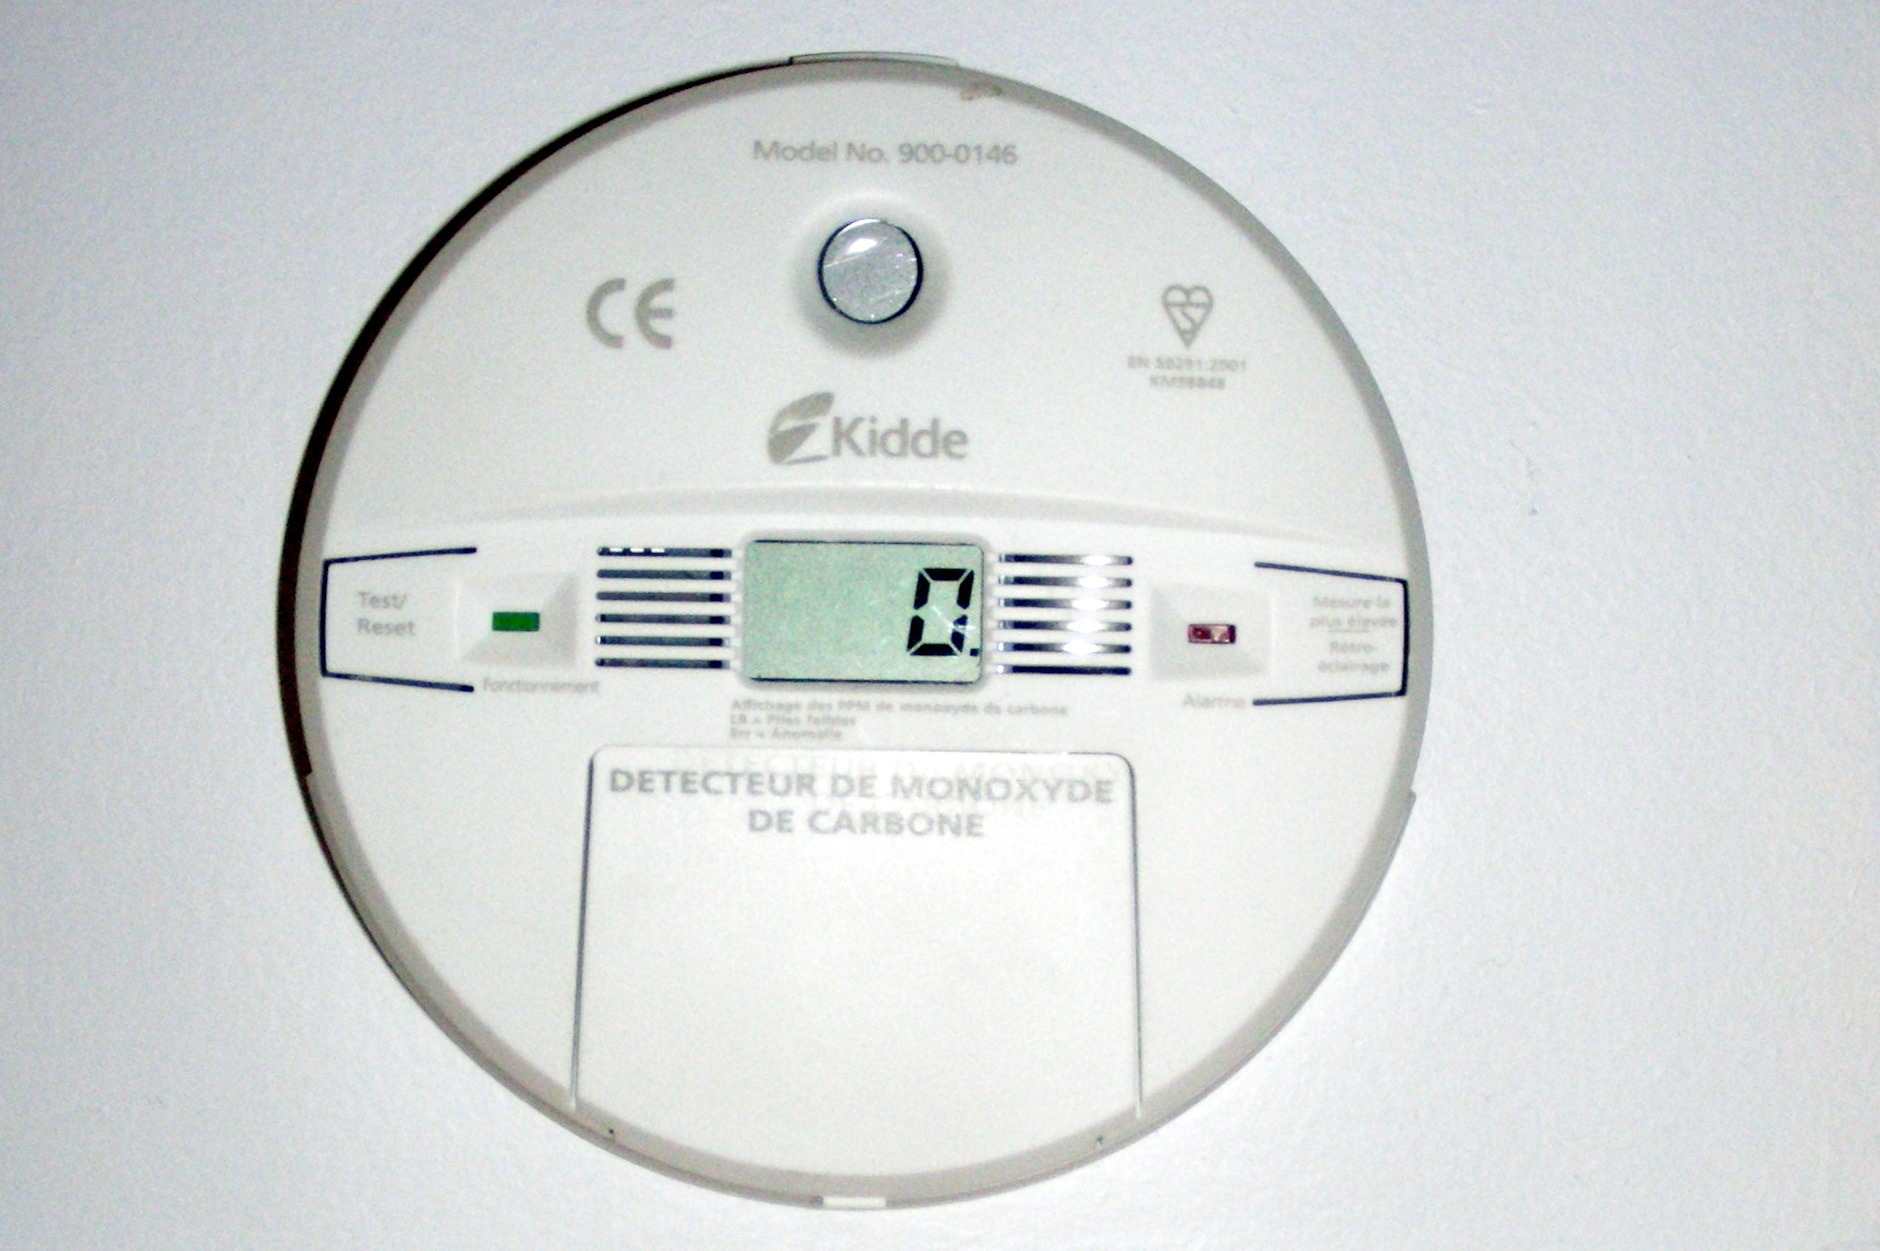 Carbon Monoxide Alarm: A Preventative Measure